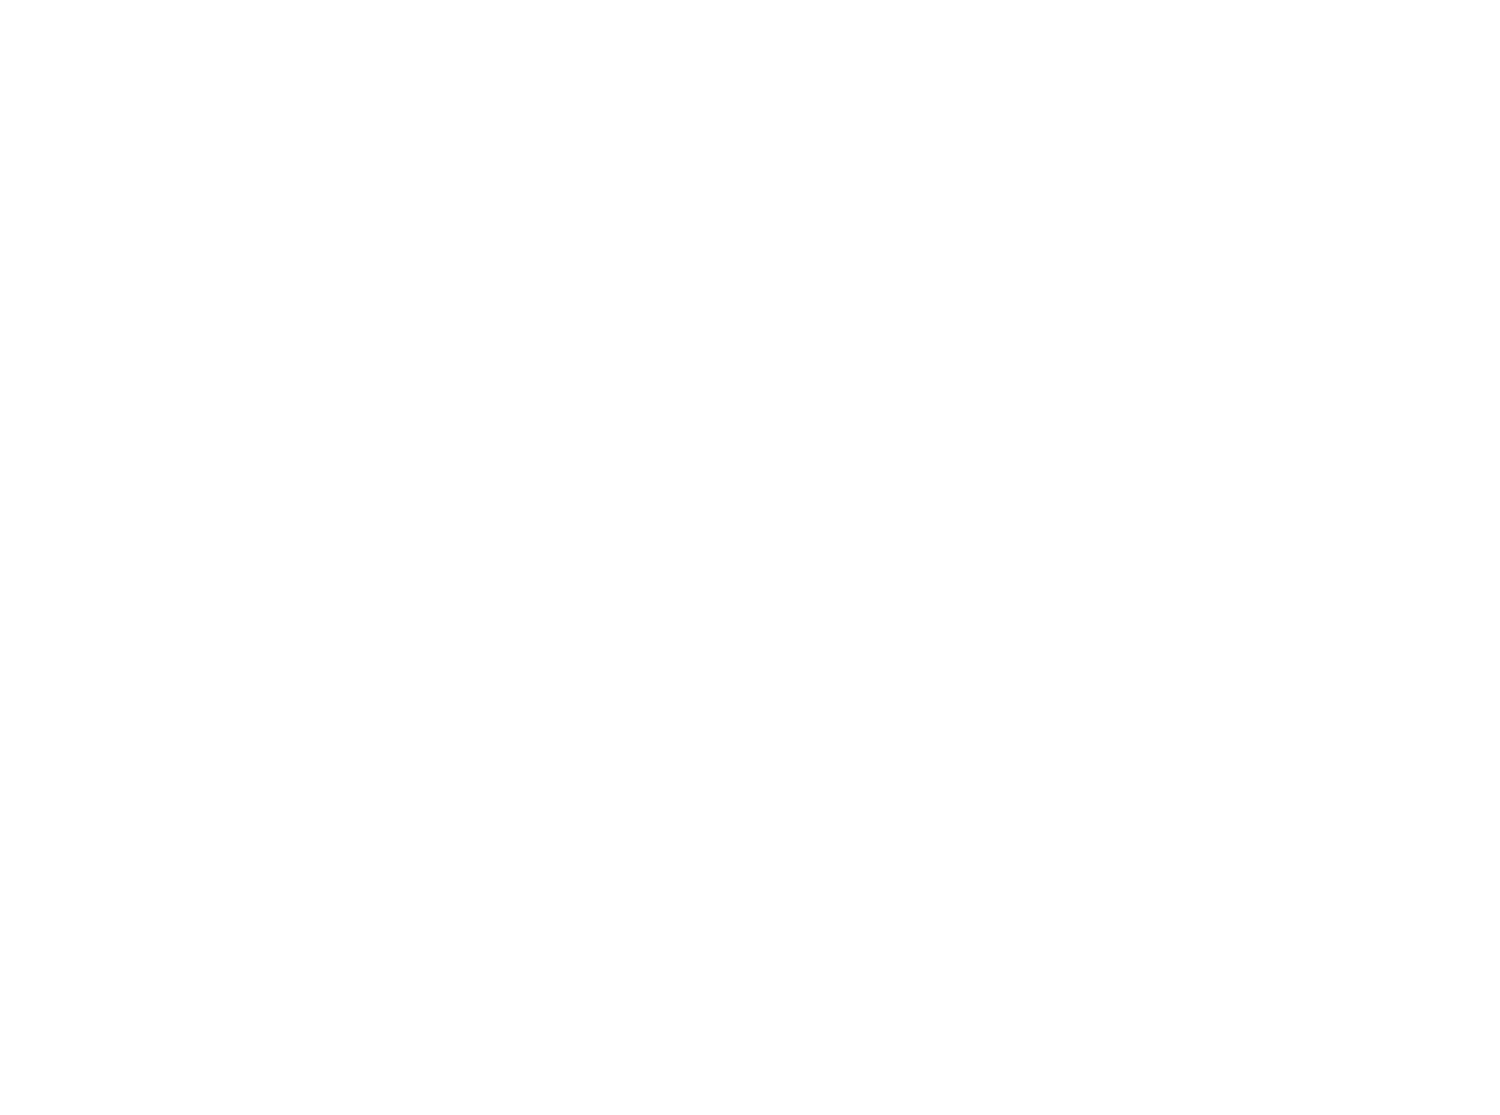 Anthony Johnson Photography